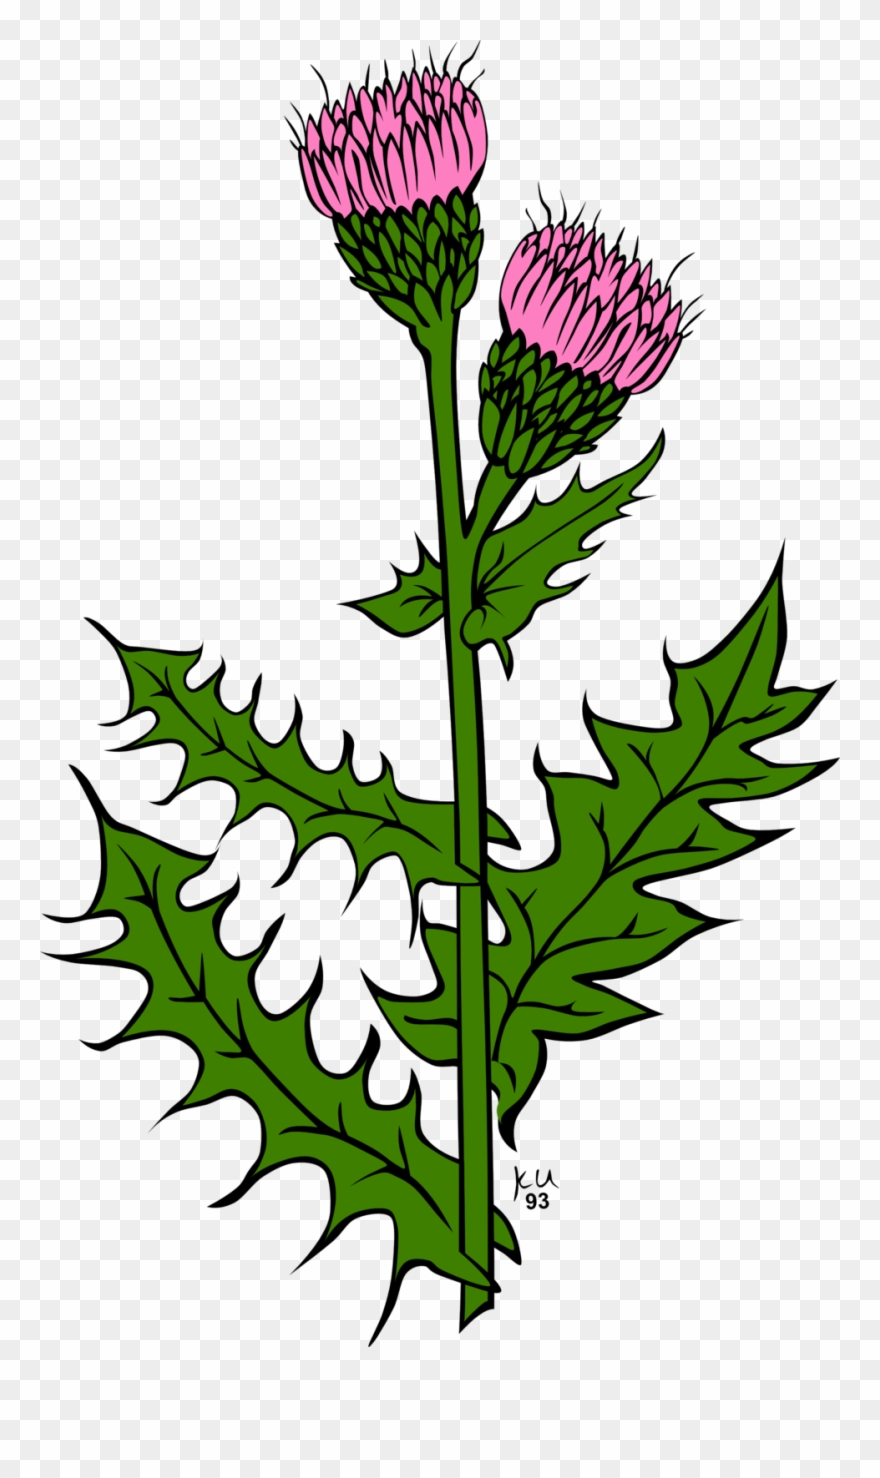 Thistle clipart scotland png royalty free stock Ku Cirsium Arvense - Scottish Thistle Clip Art - Png ... png royalty free stock